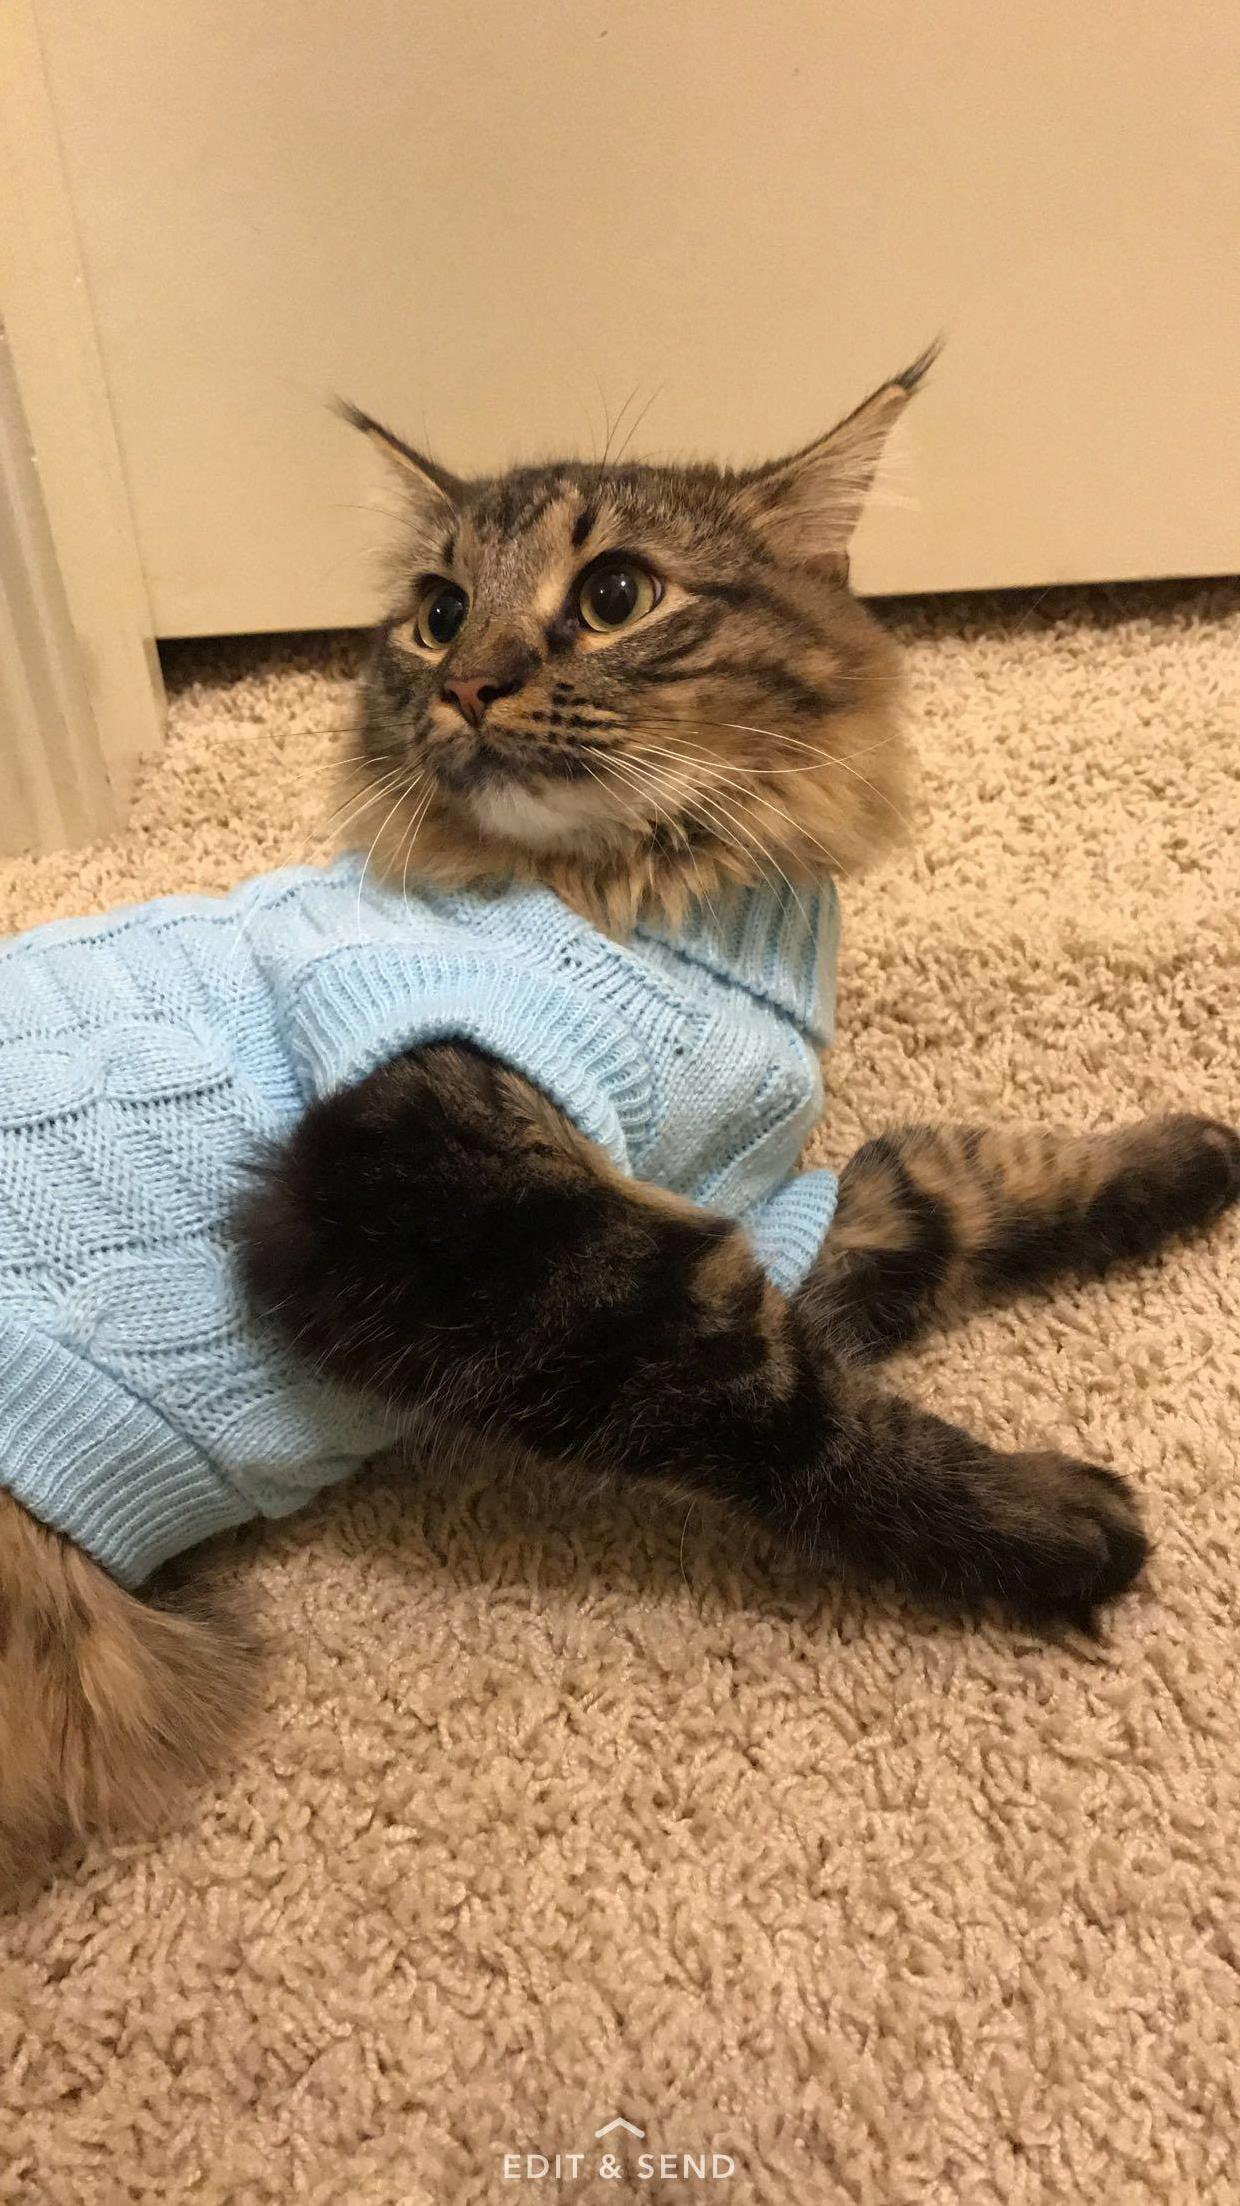 I got my cat a sweater